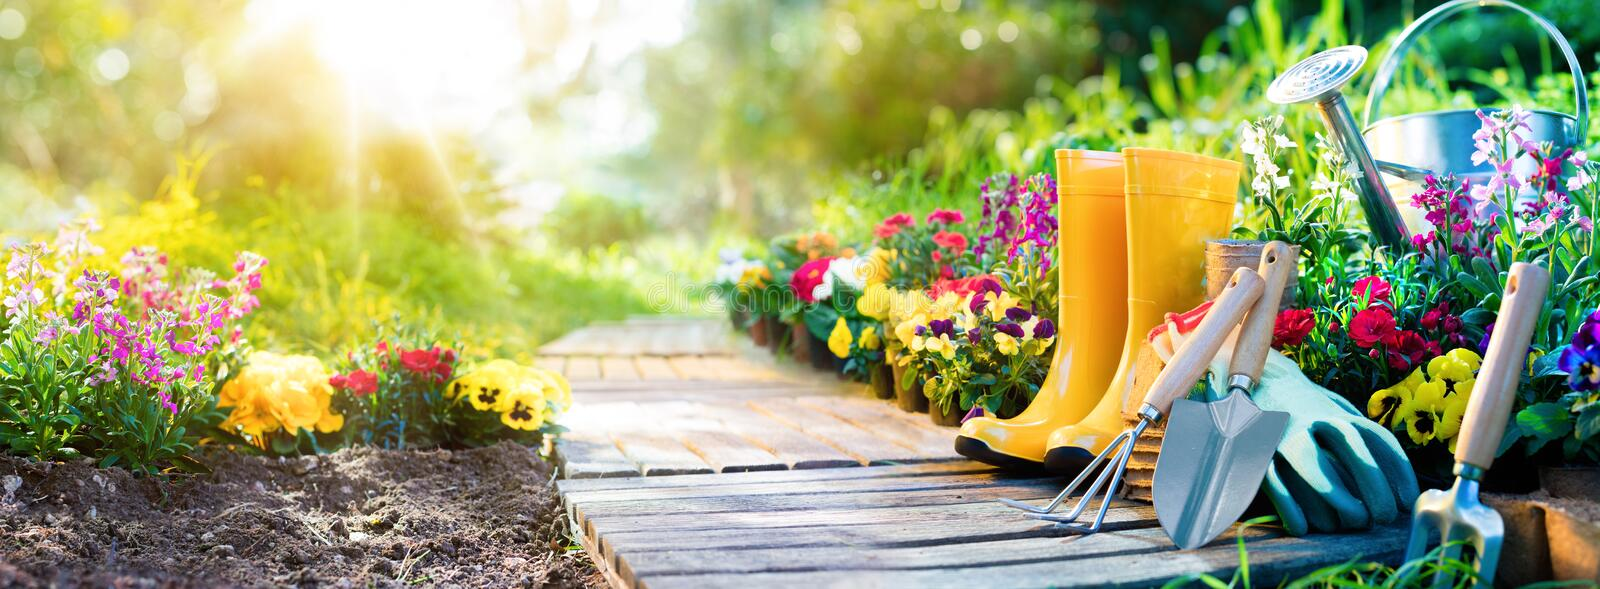 Gardening - Set Of Tools For Gardener And Flowerpots stock photography